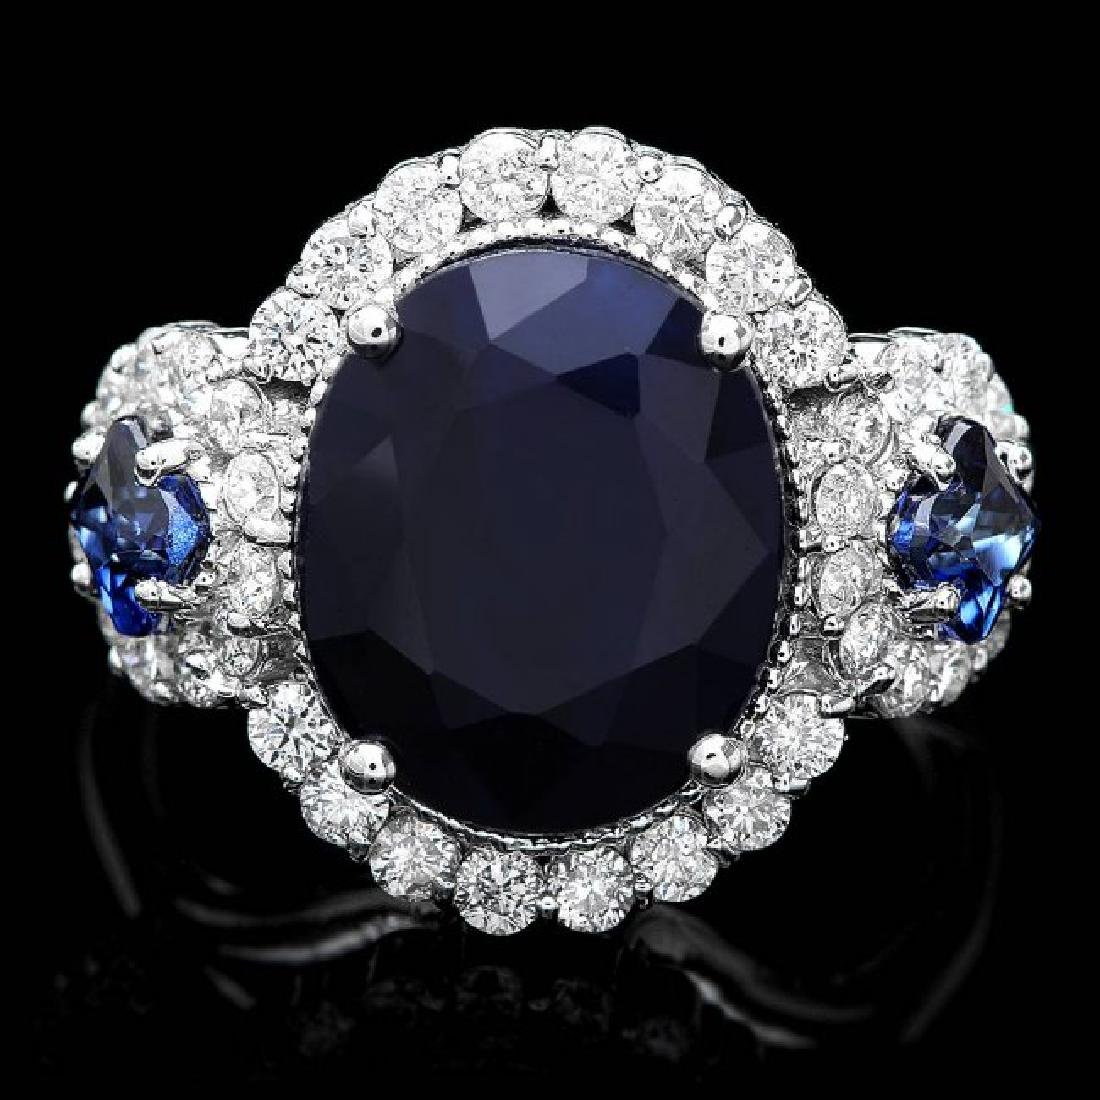 14k White Gold 6.5ct Sapphire 0.90ct Diamond Ring